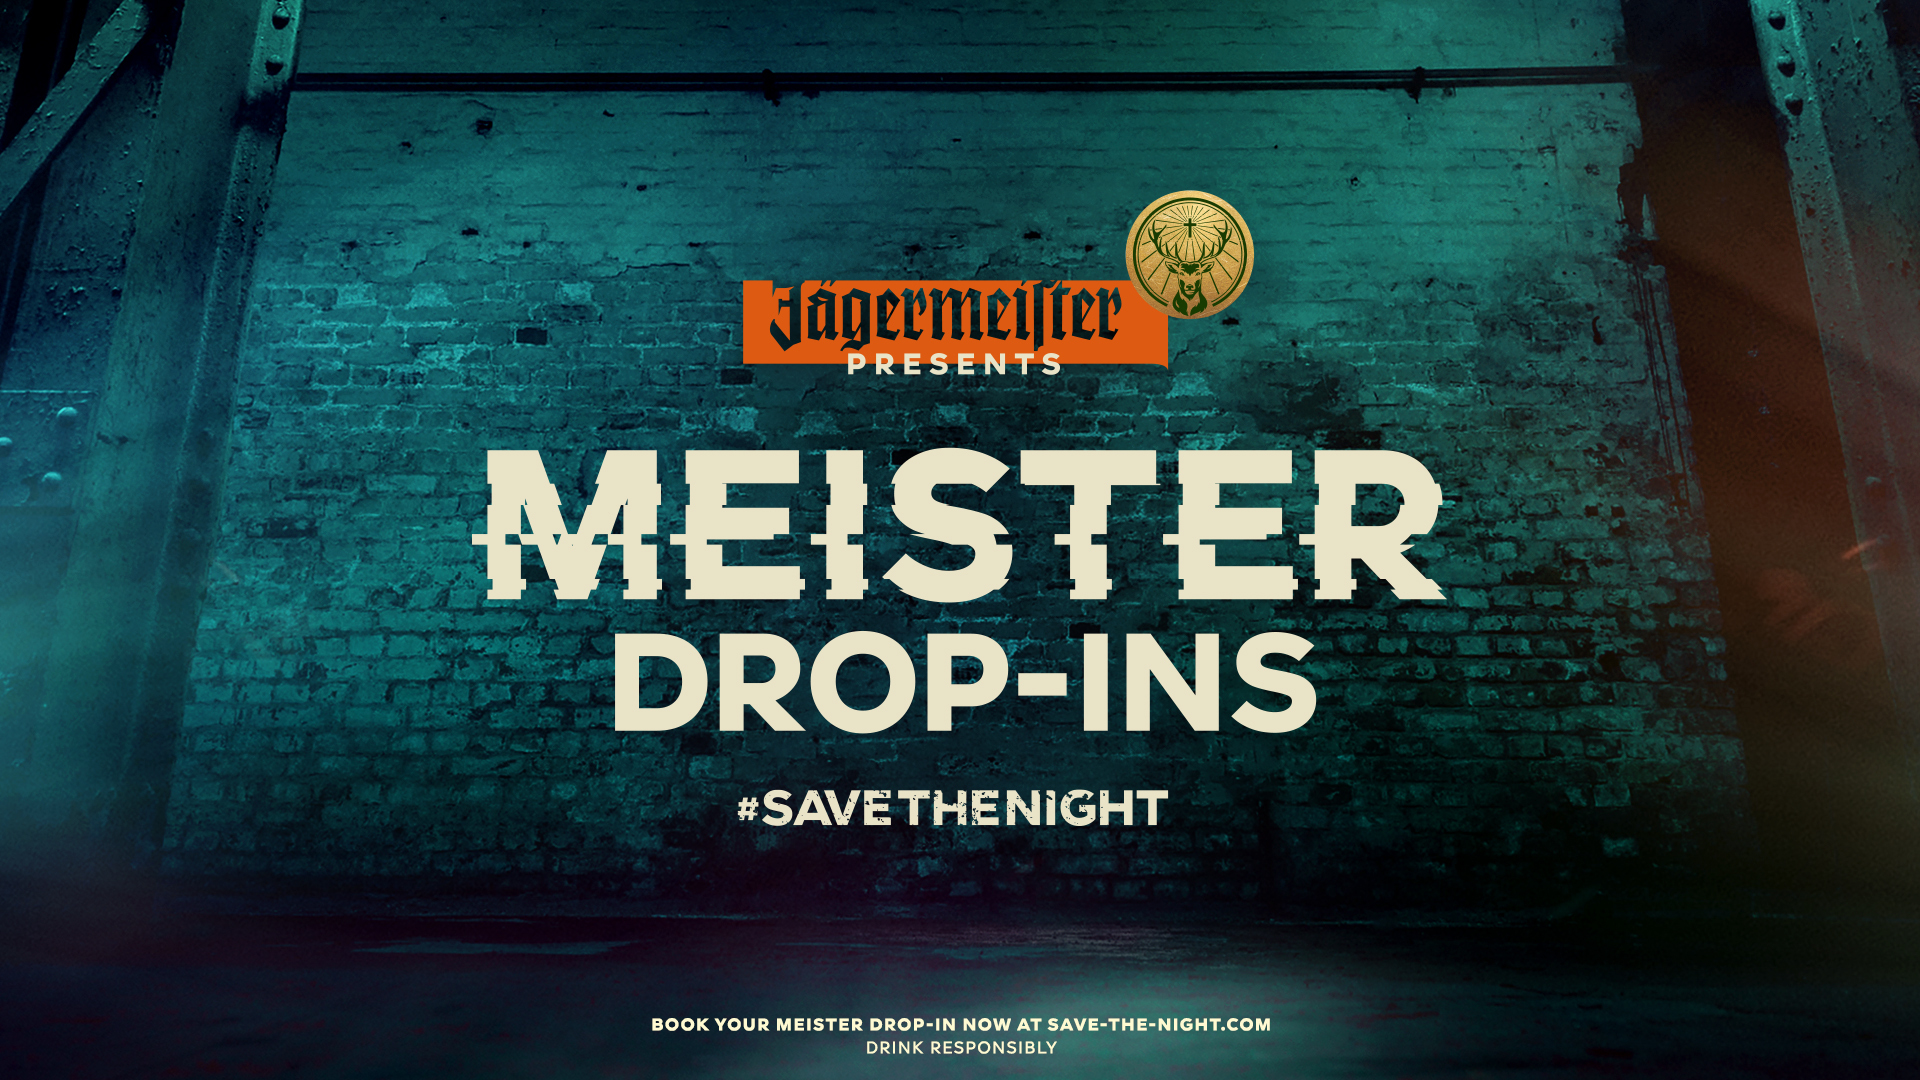 Meister Drop-ins to #SAVETHENIGHT